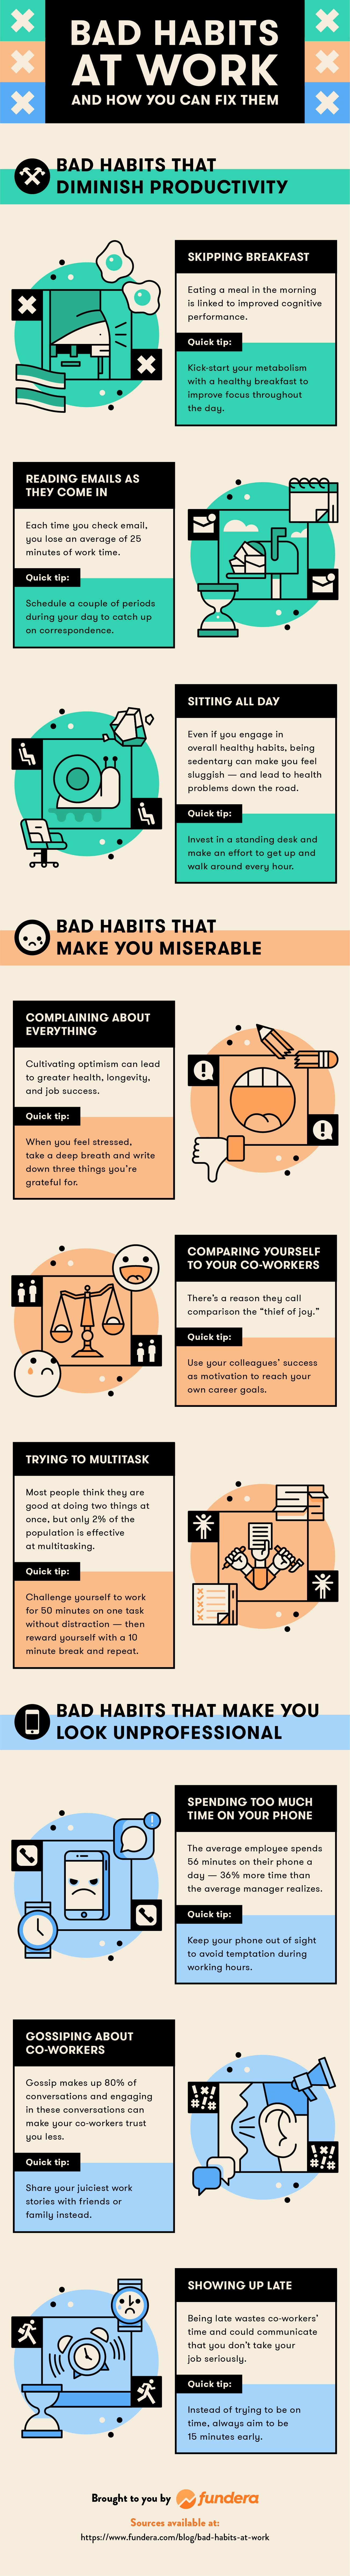 9 Bad Work Habits—and How to Break Them